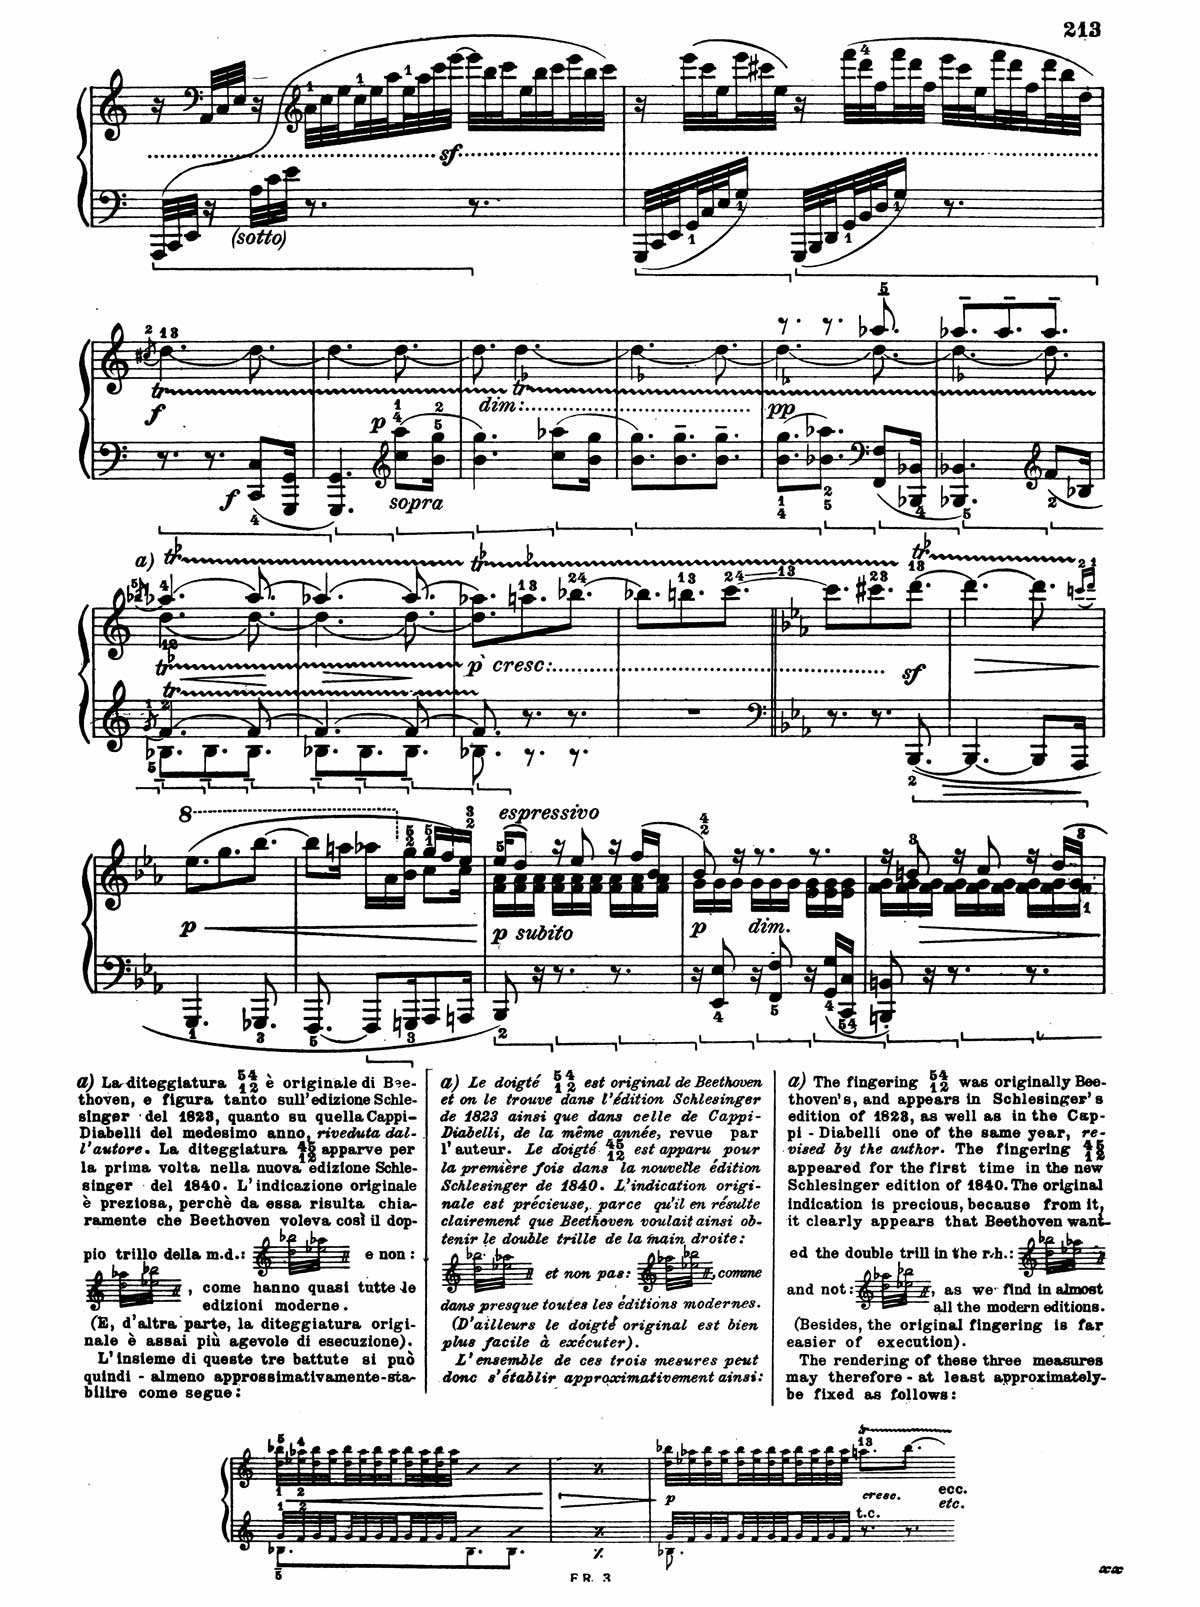 Beethoven Piano Sonata 32-21 sheet music